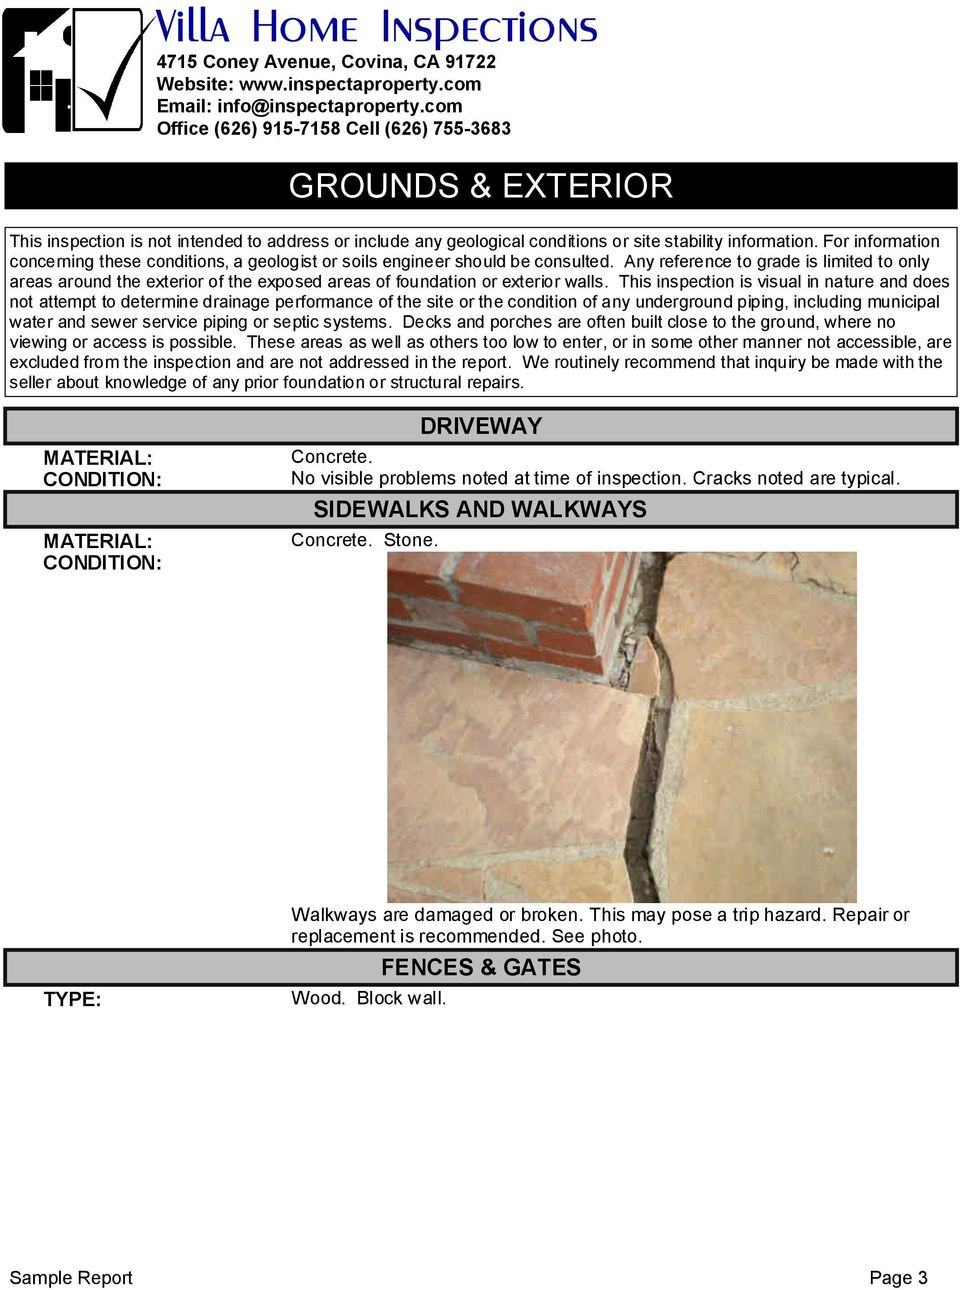 Any reference to grade is limited to only areas around the exterior of the exposed areas of foundation or exterior walls.